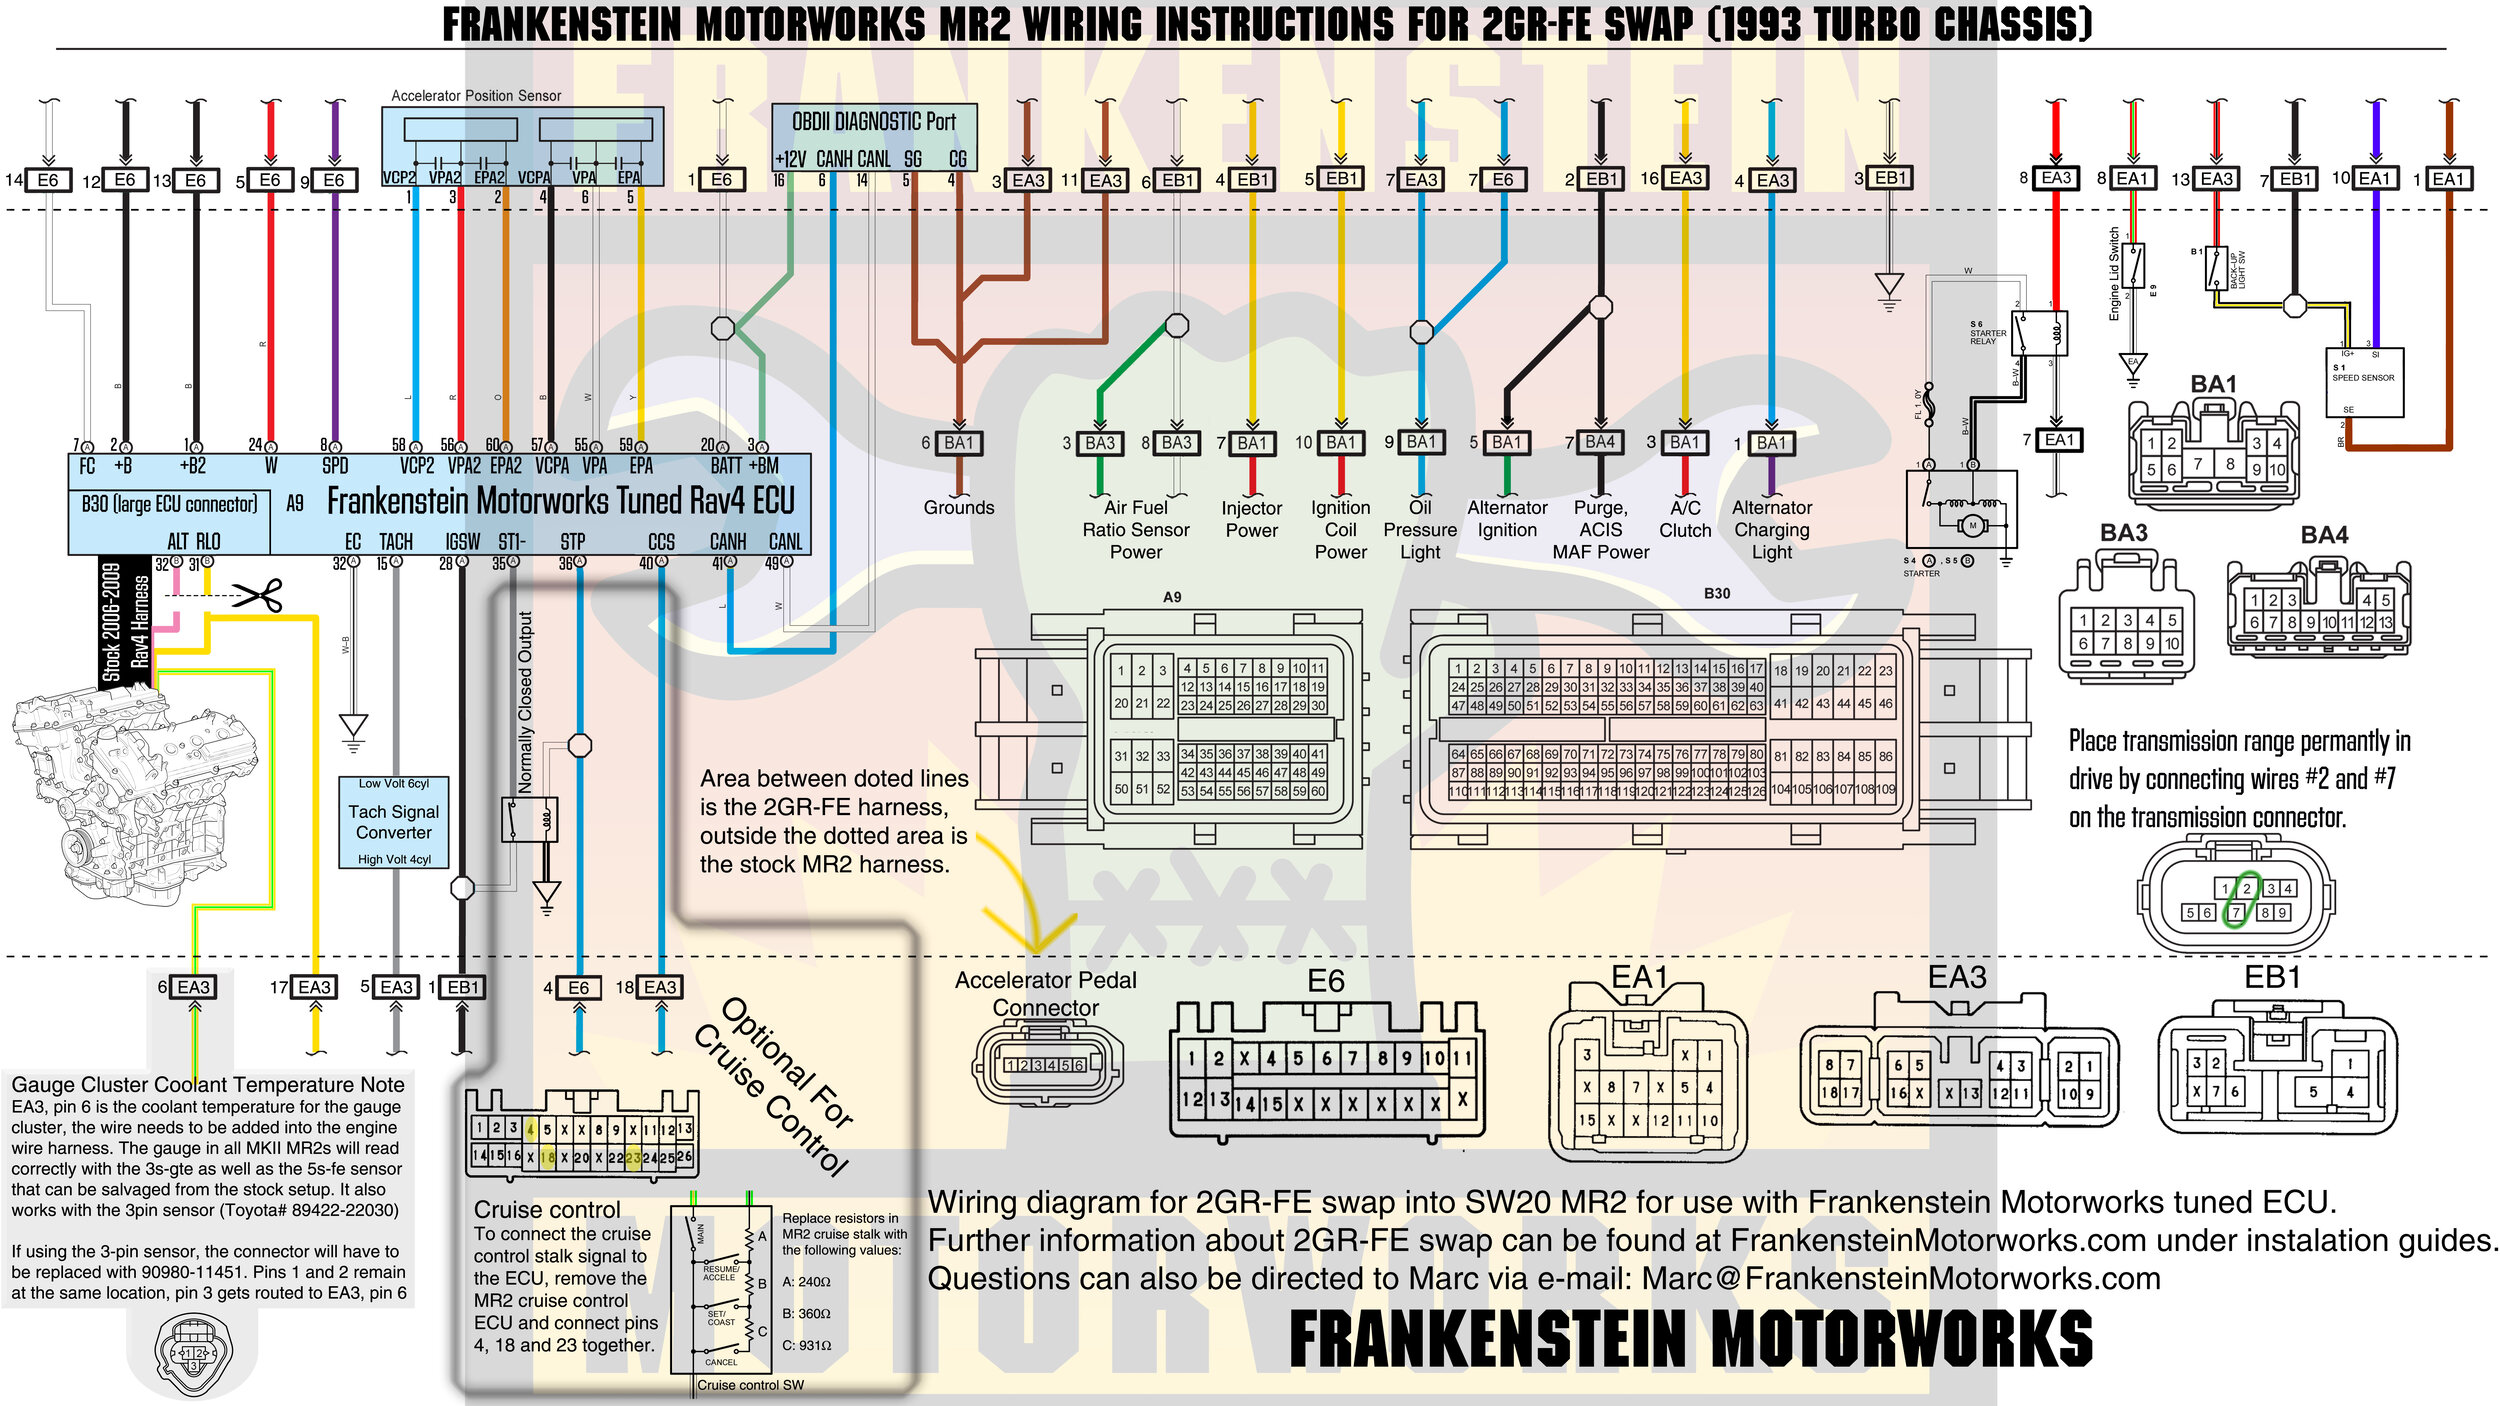 2GR Wiring diagrams — Frankenstein Motorworks | 93 Mr2 Ecu Wiring Diagram |  | Frankenstein Motorworks - Squarespace